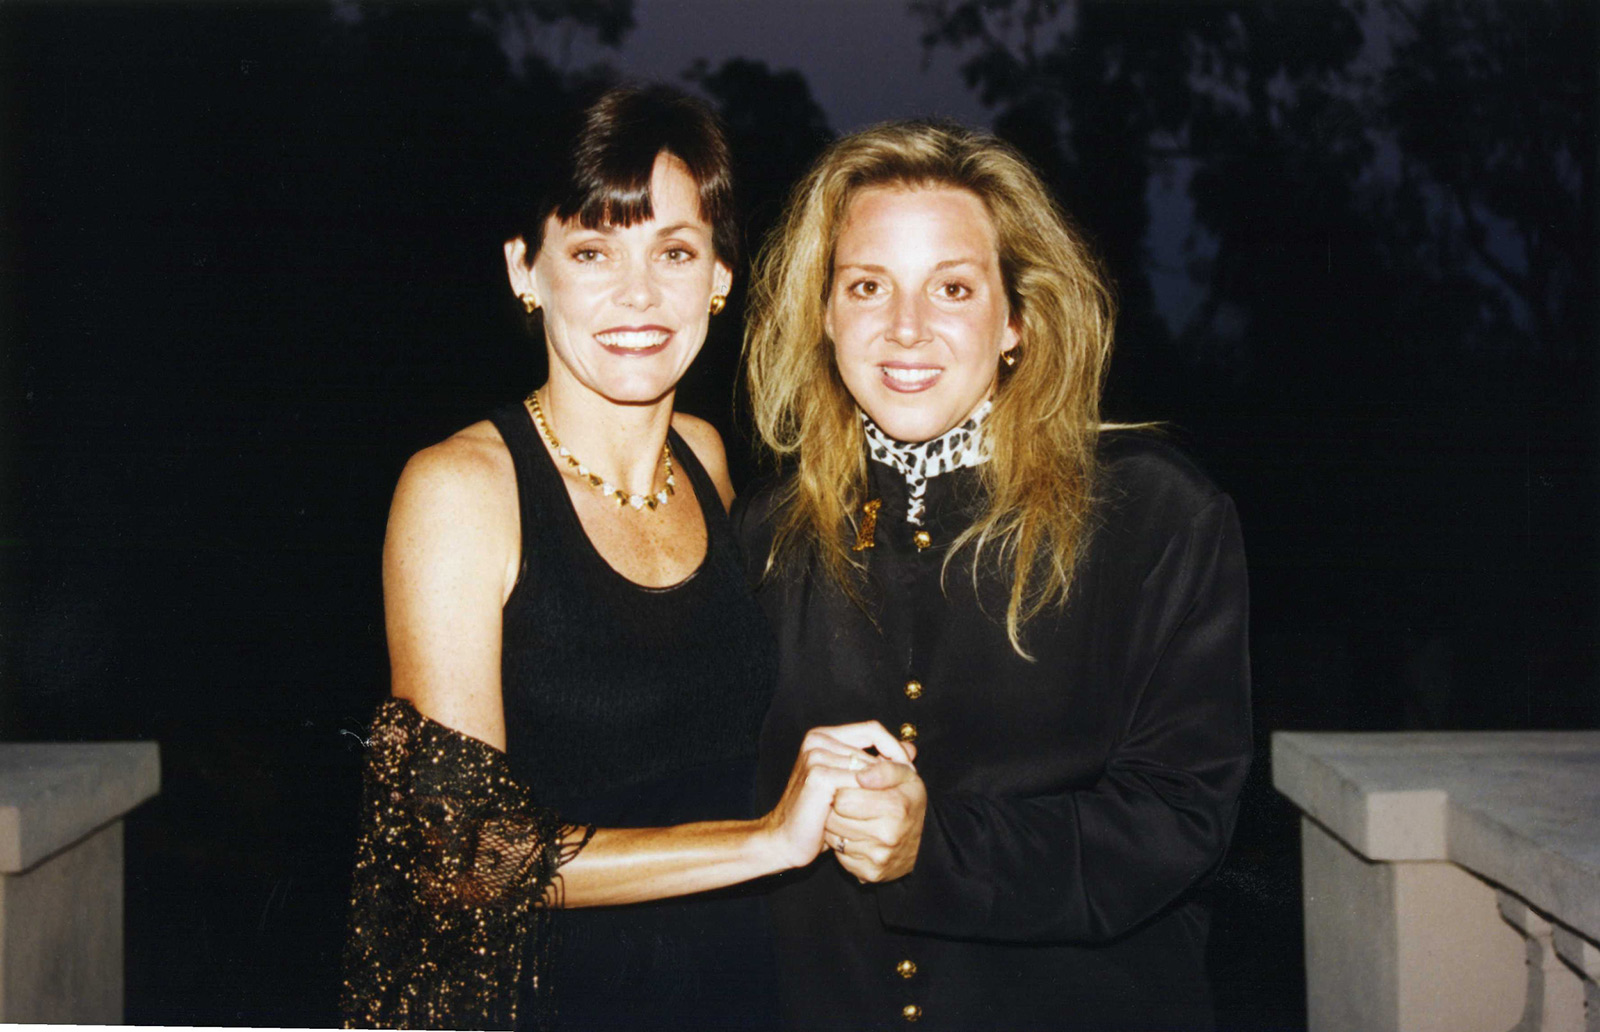 The Founders sisters Michele Nicols & Jenny Barr  Michelle wrote one of the first of two checks to begin the dream (the other was by Rod Lathim) along with countless contributions as Dream got it's legs, and along with sister Jenny indispensable emotional support.